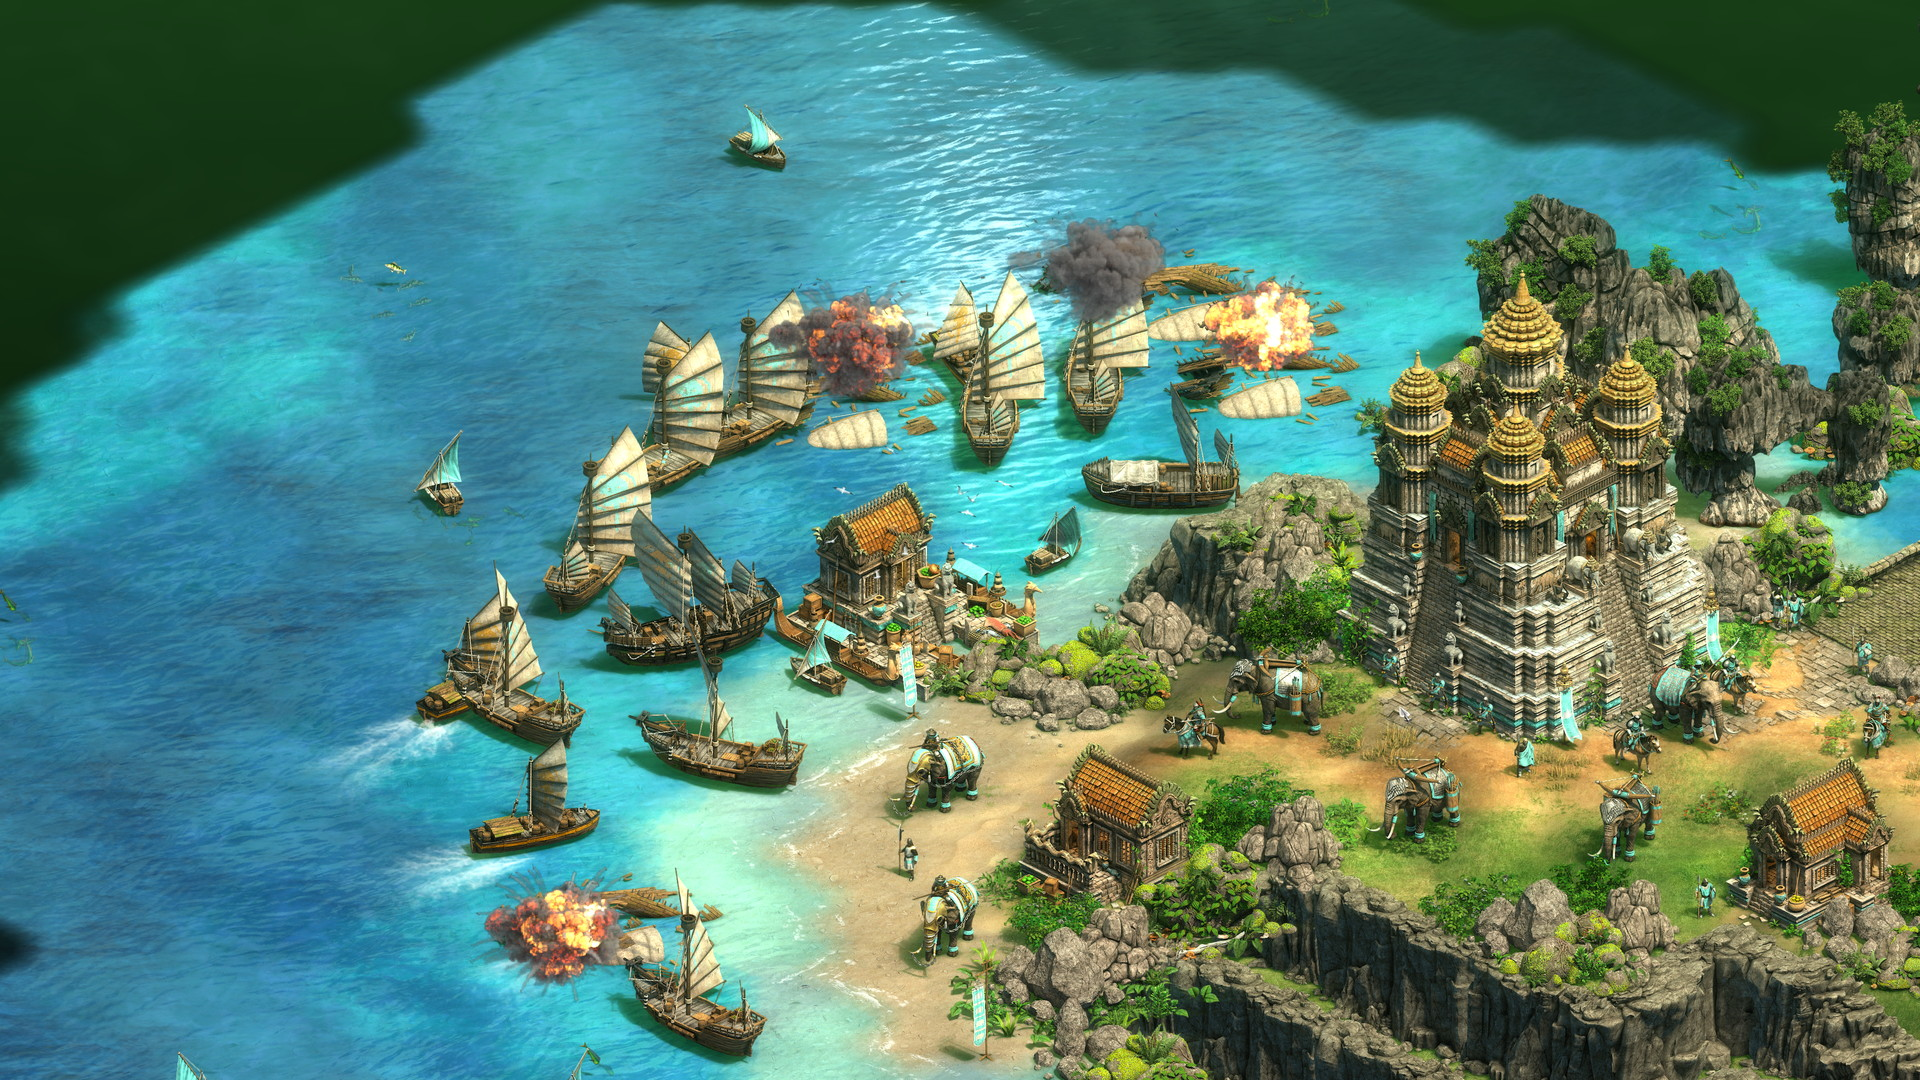 Age of Empires II: Definitive Edition - screenshot 7